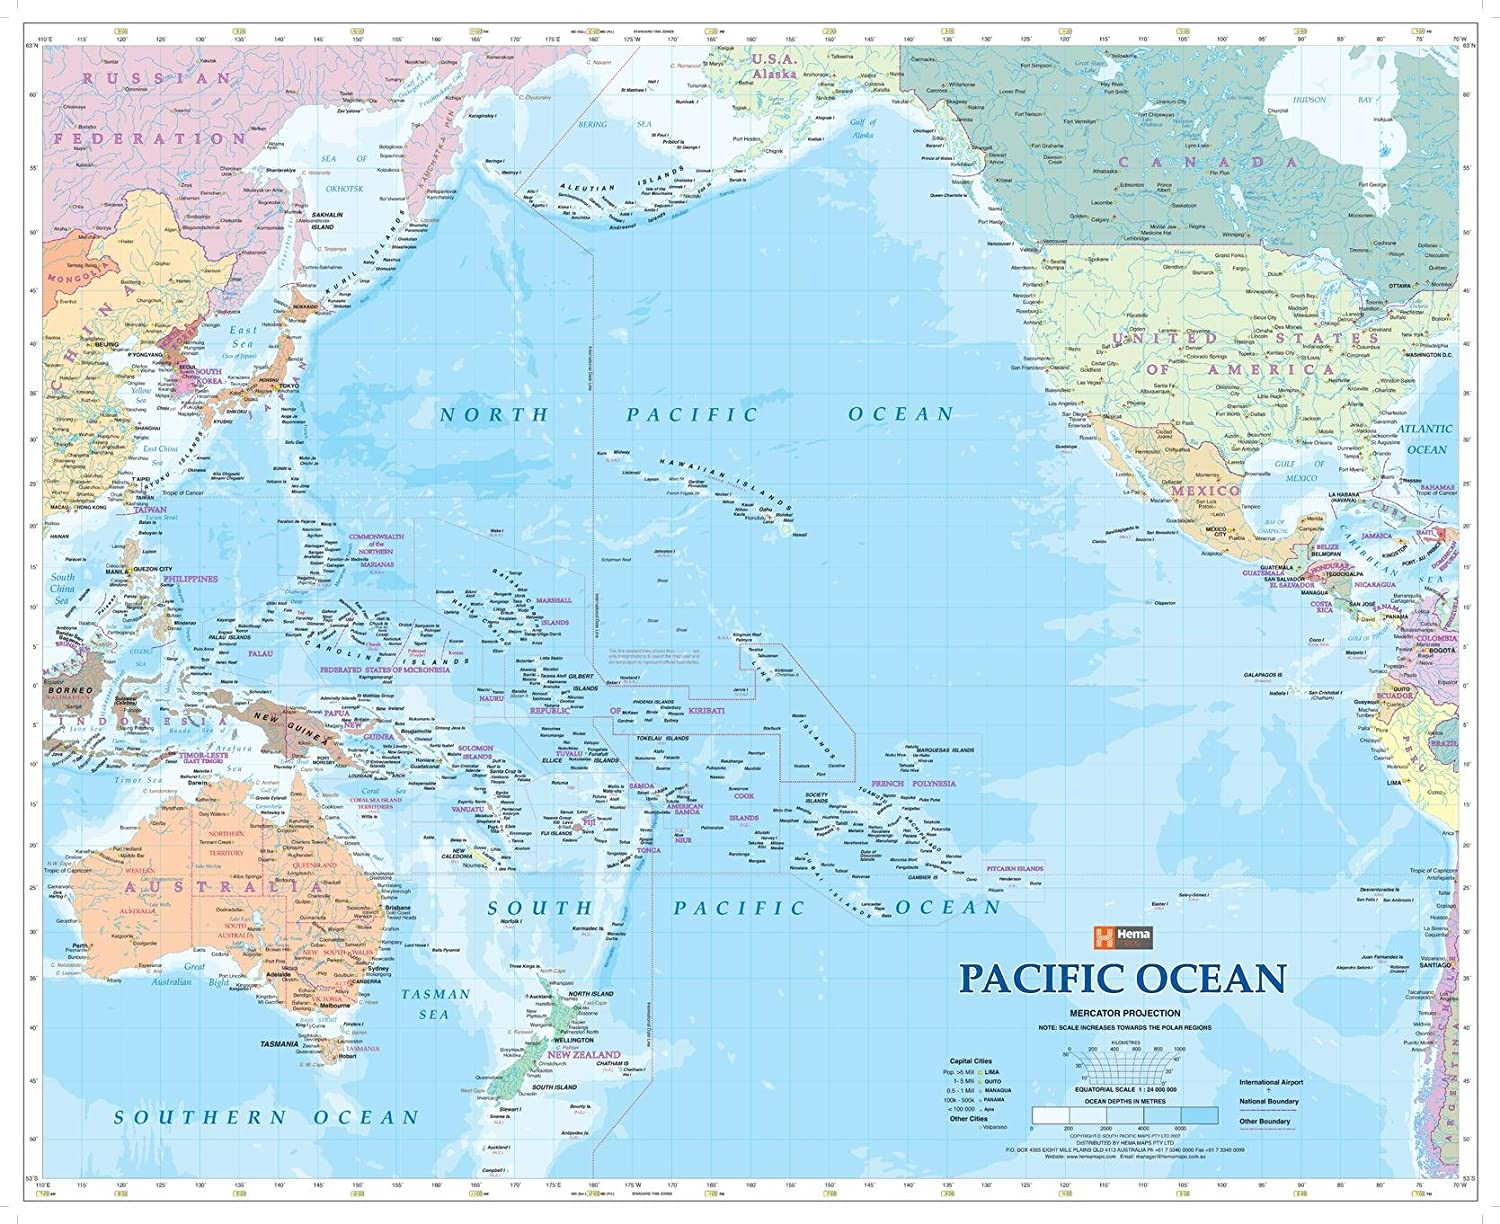 pacific ocean on a map Pacific Ocean Wall Map 35 X 28 5 Matte Plastic Amazon In pacific ocean on a map